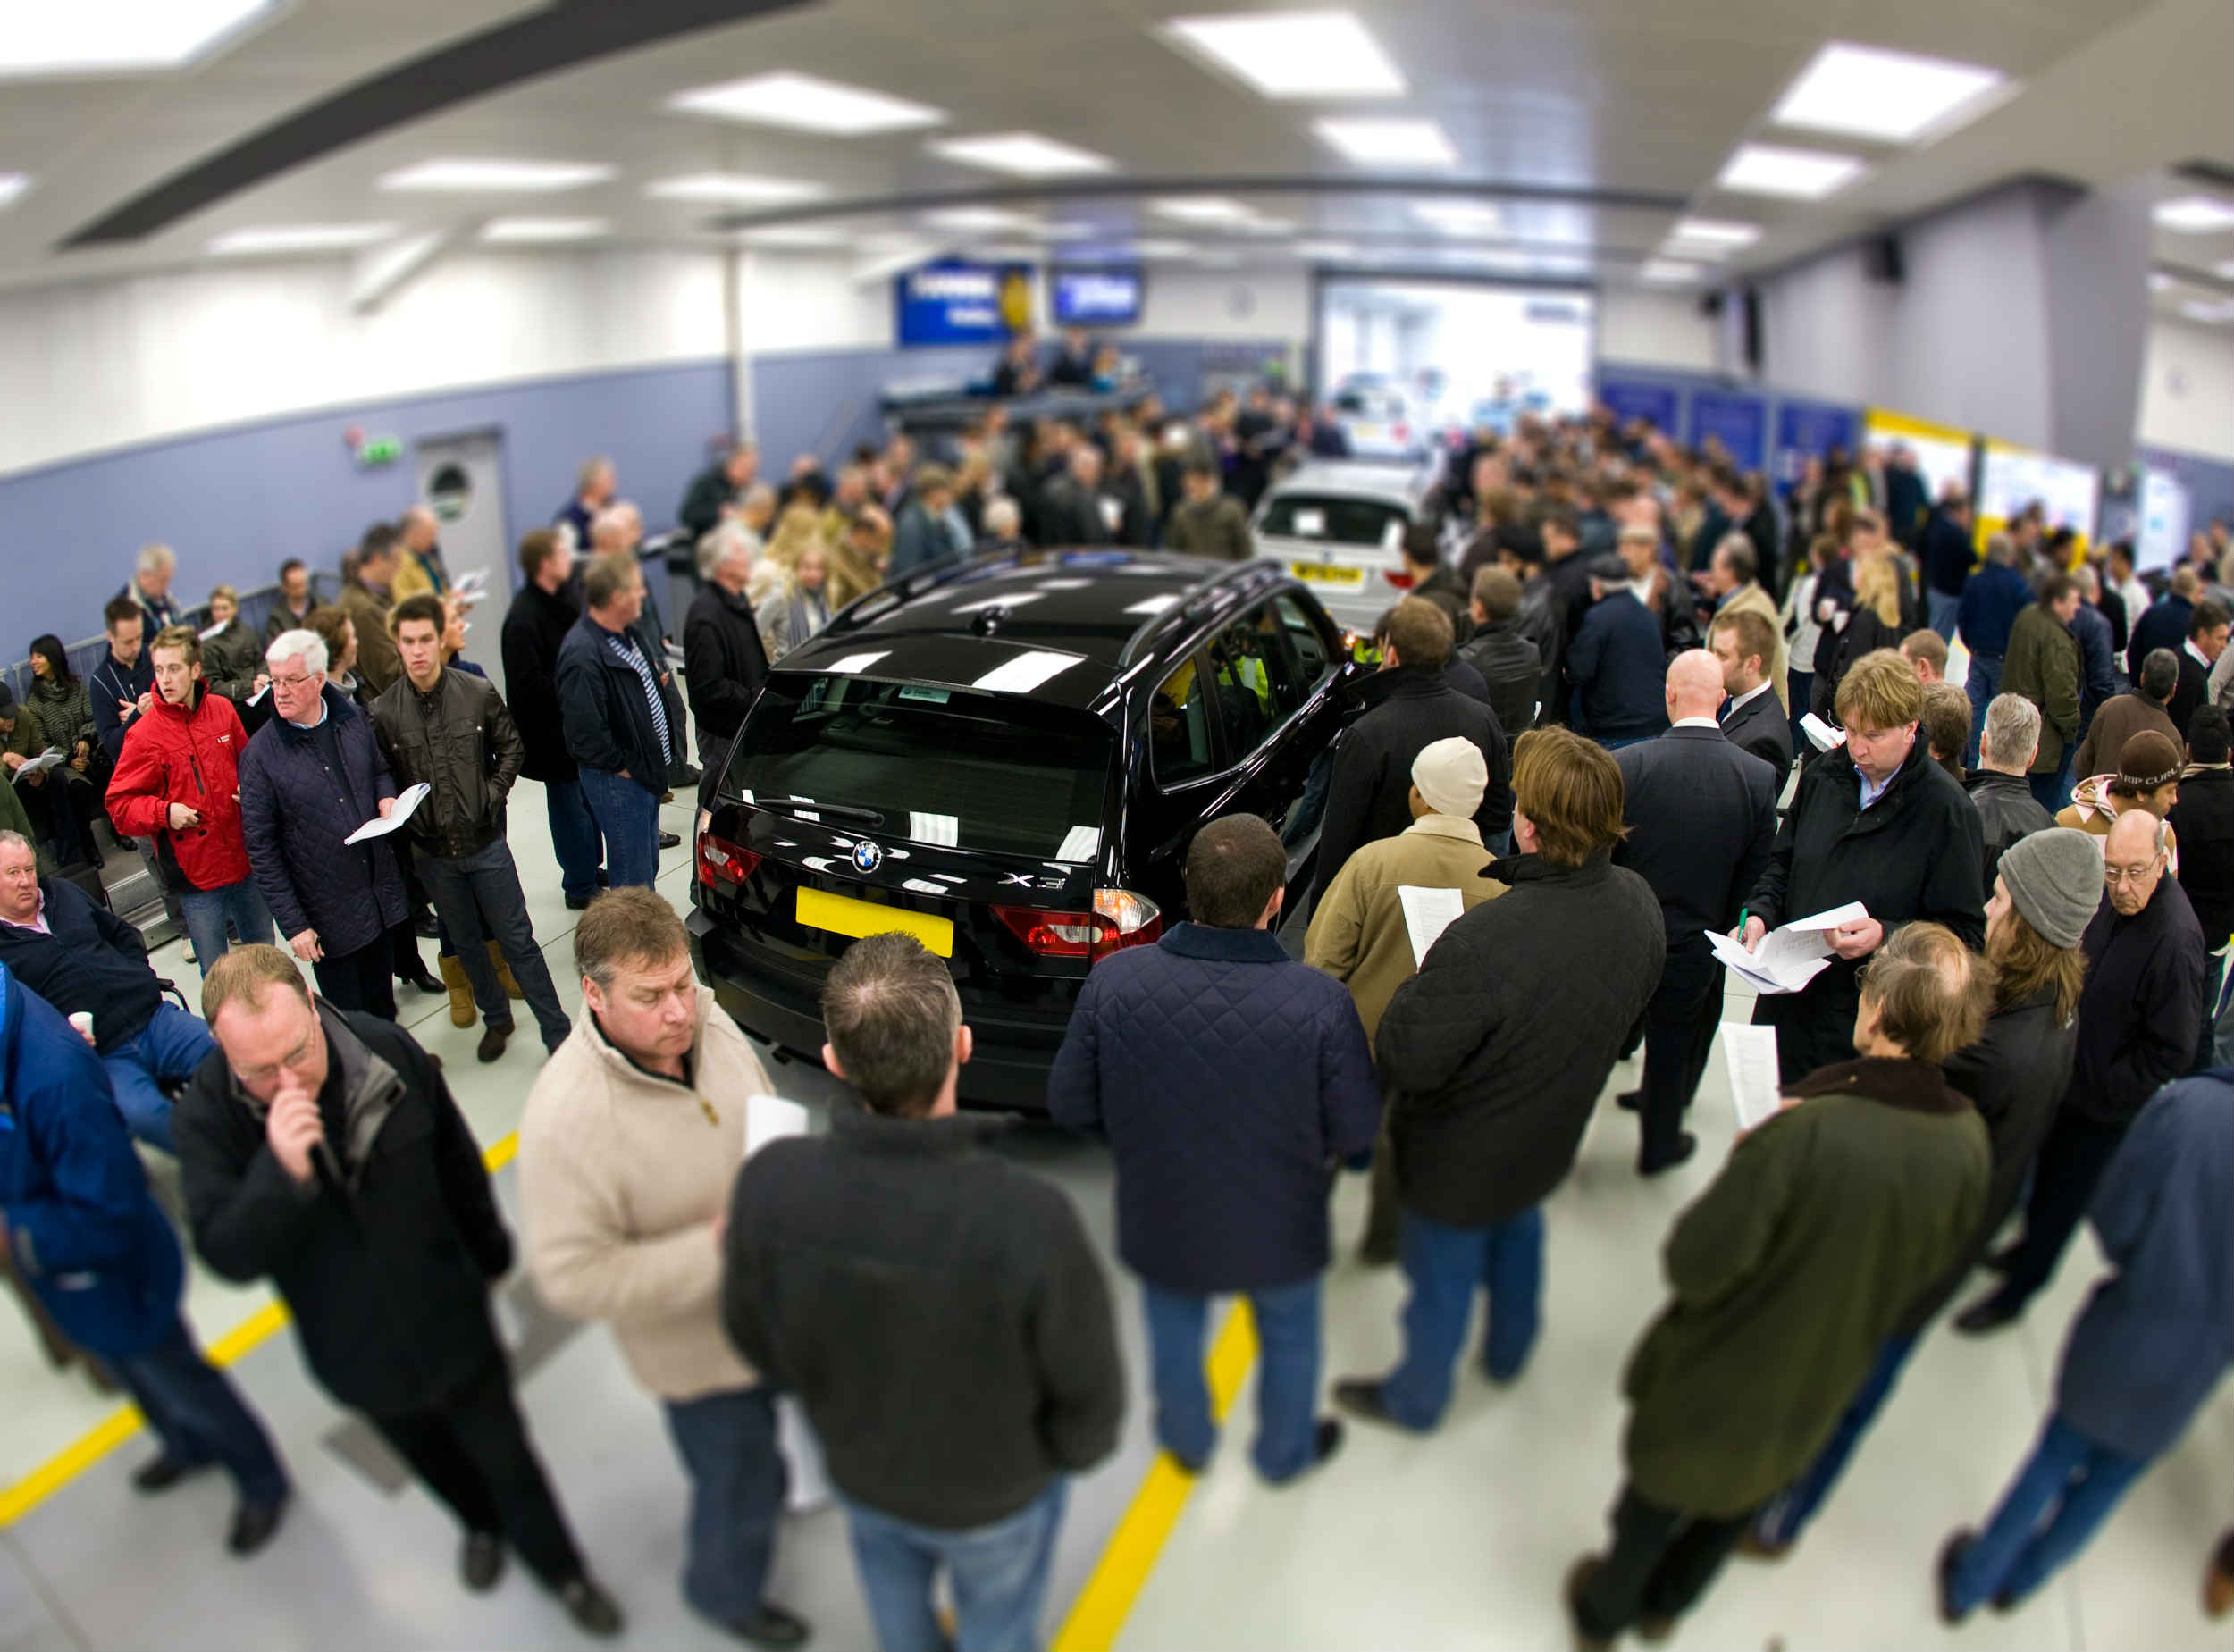 Bidders at a car auction in Colchester